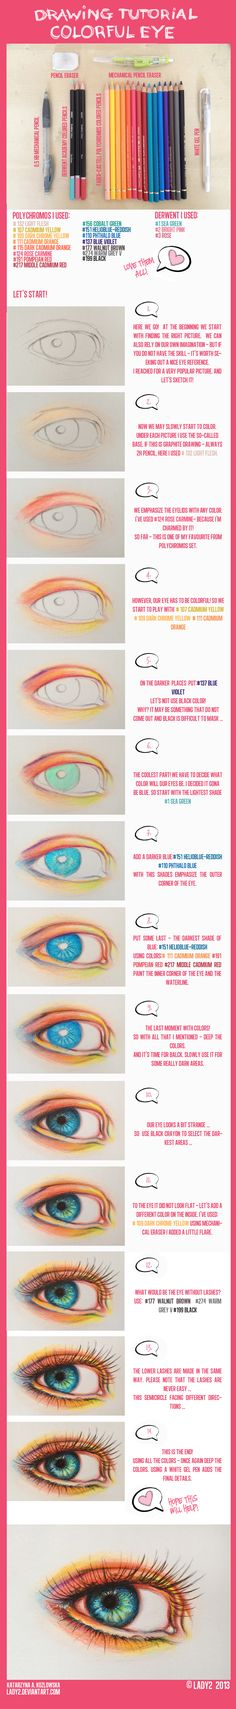 colored_pencil_eye_tutorial. by Lady2.deviantart.com on @deviantART